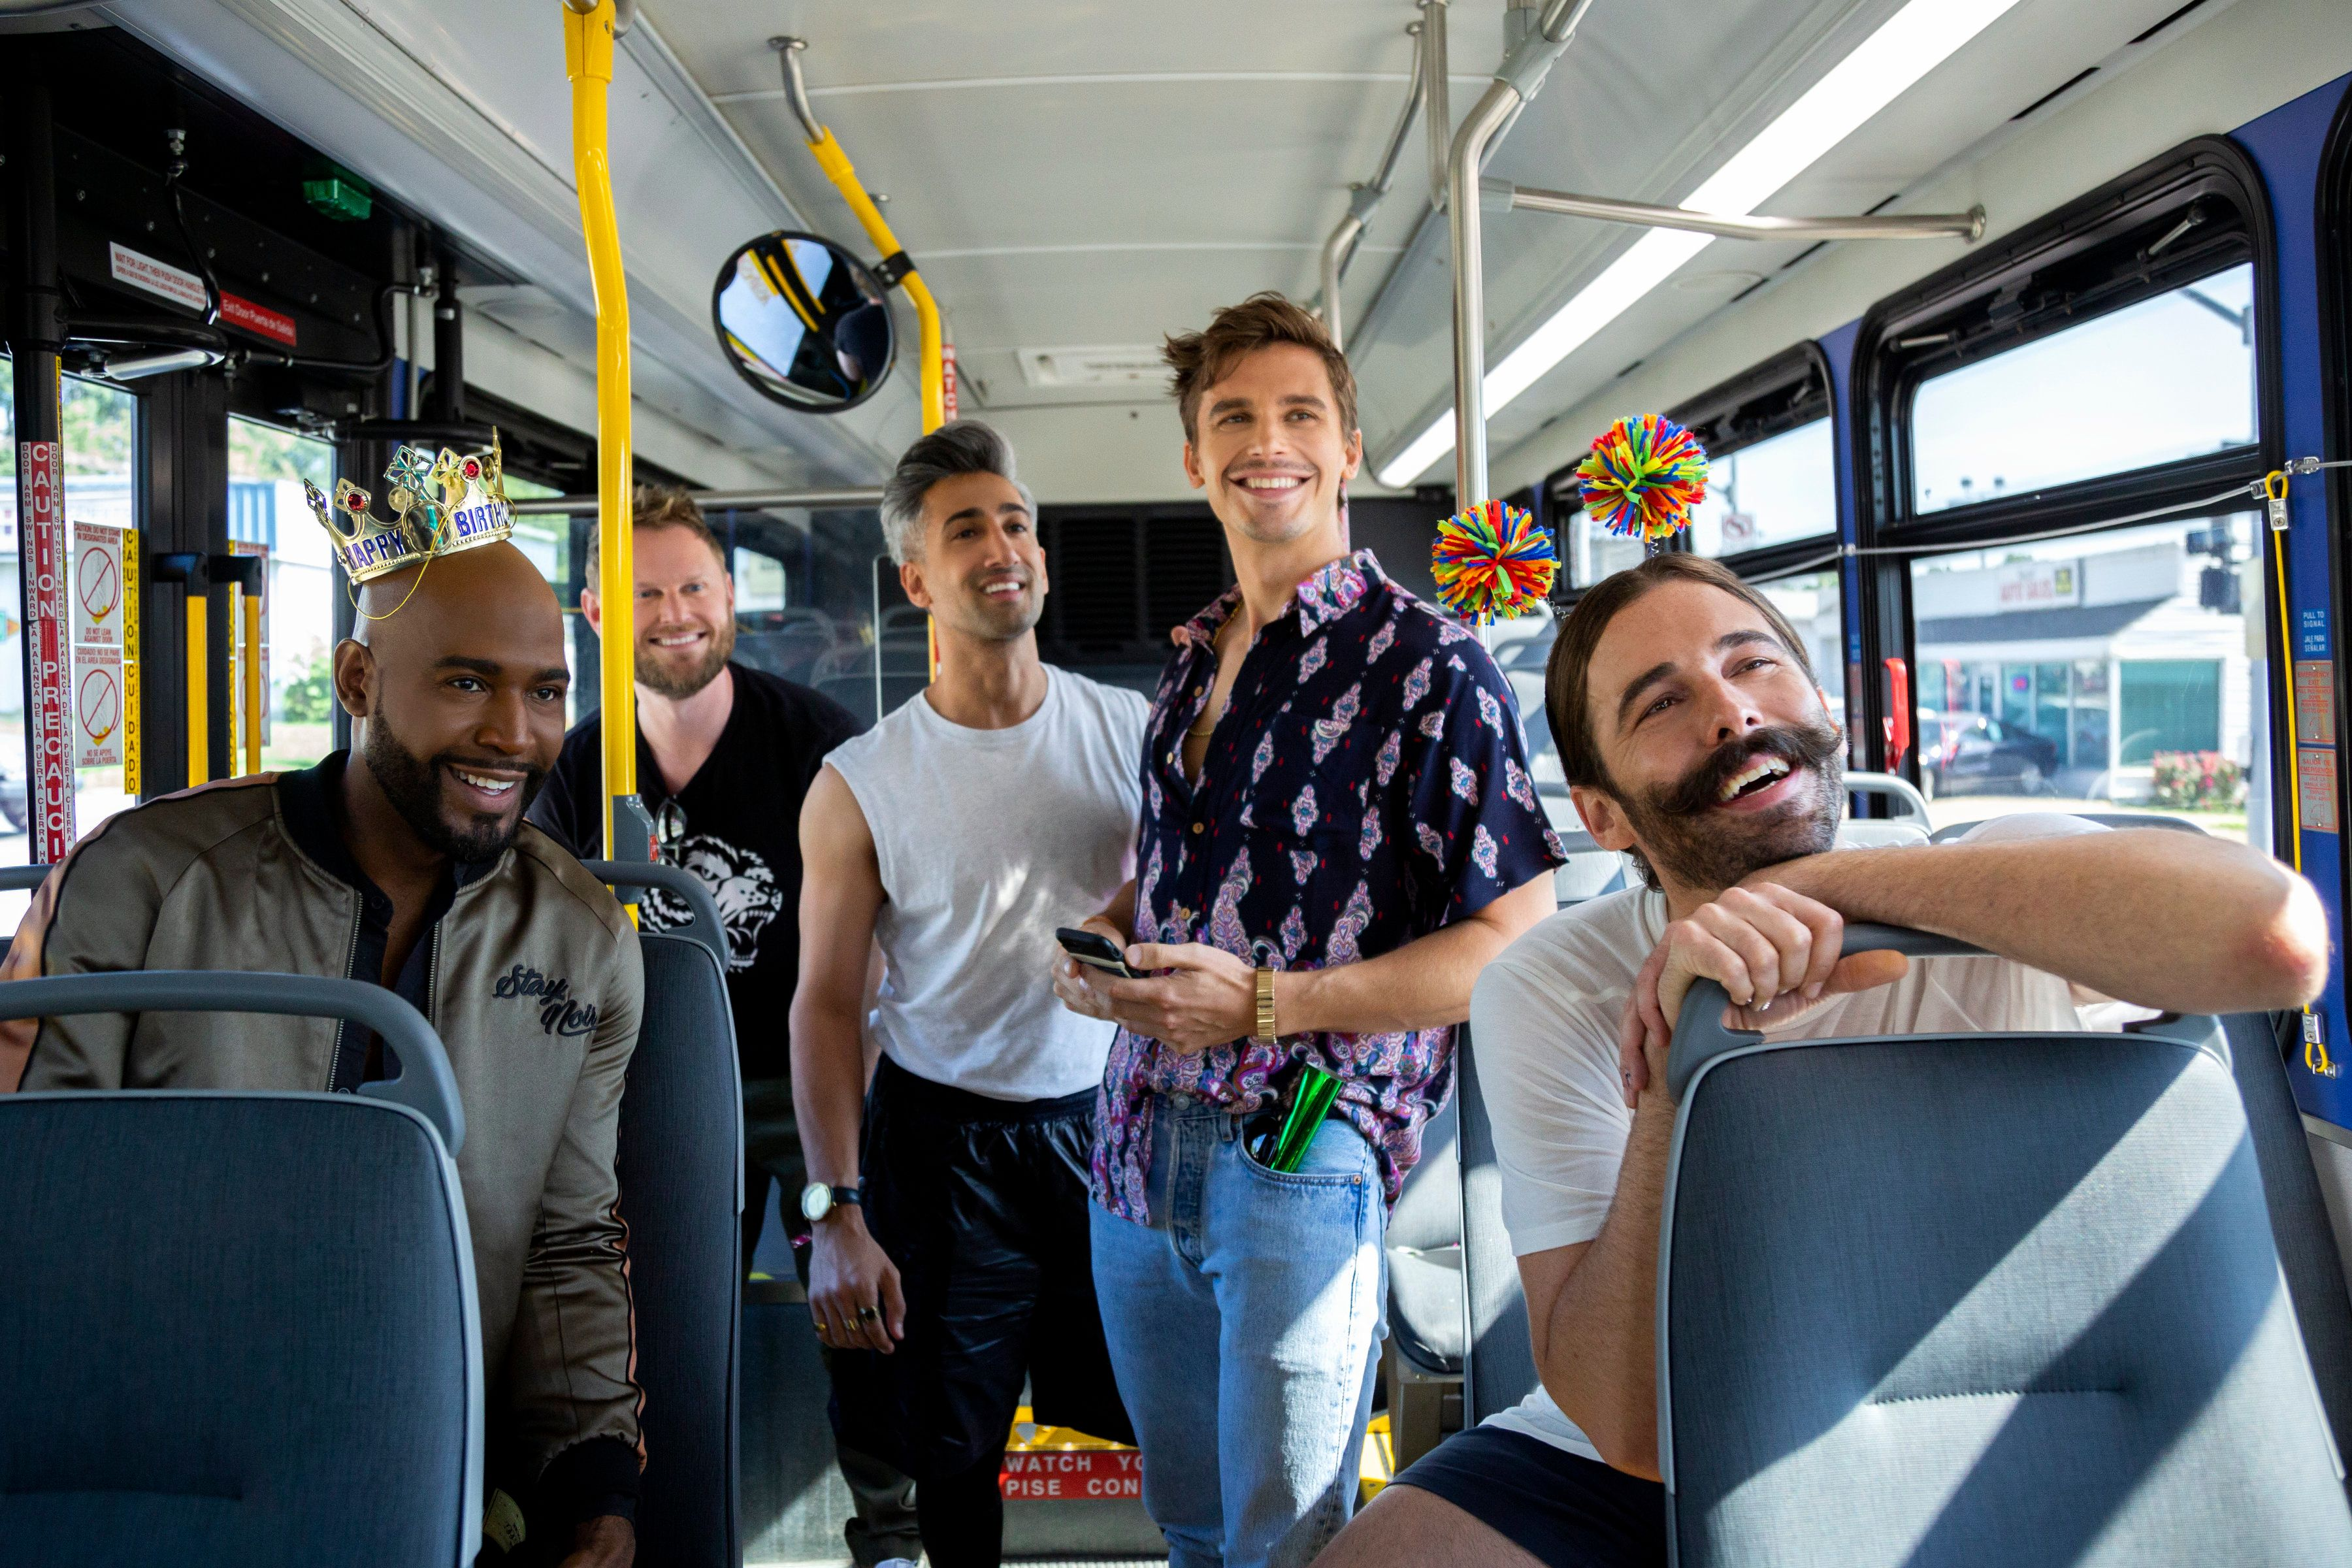 5 Netflix Shows To Watch If You Like 'Queer Eye'